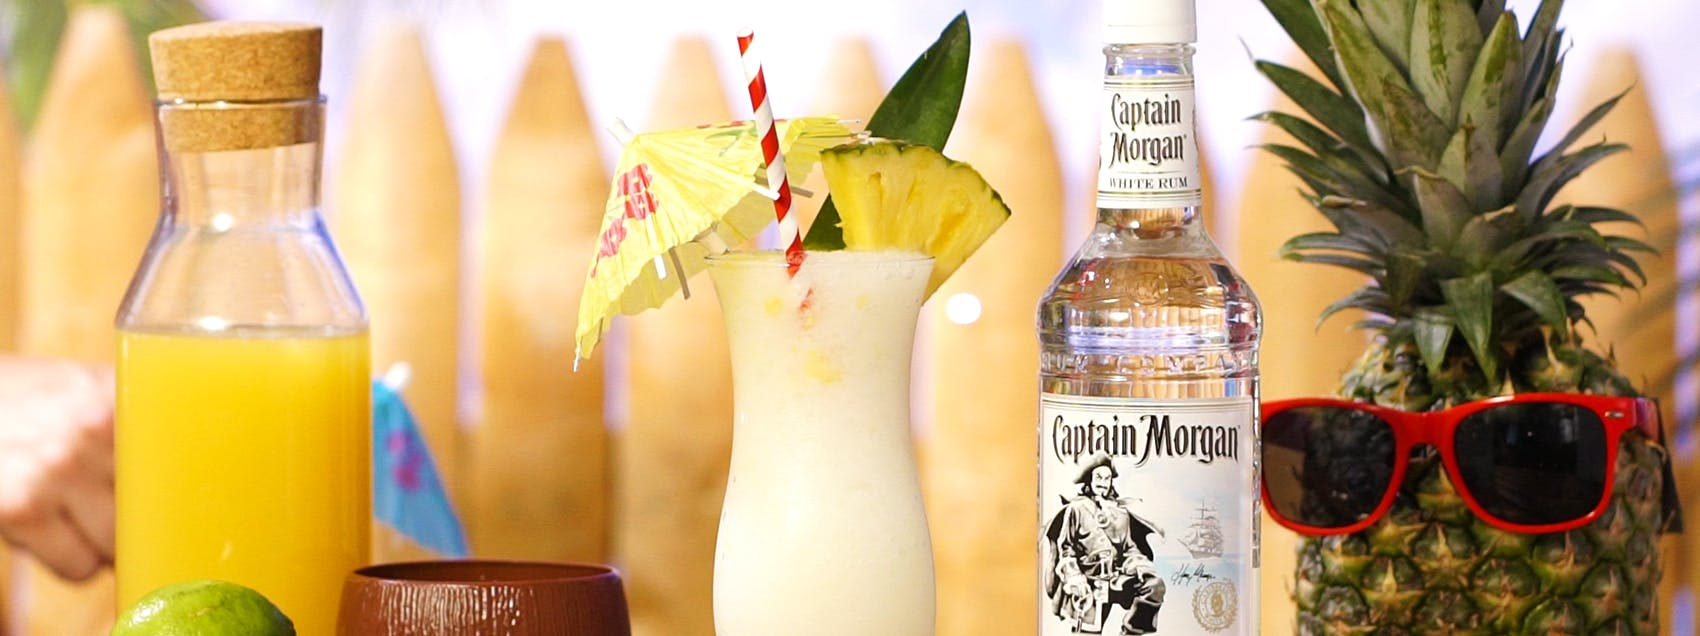 Captain Morgan Pina Colada